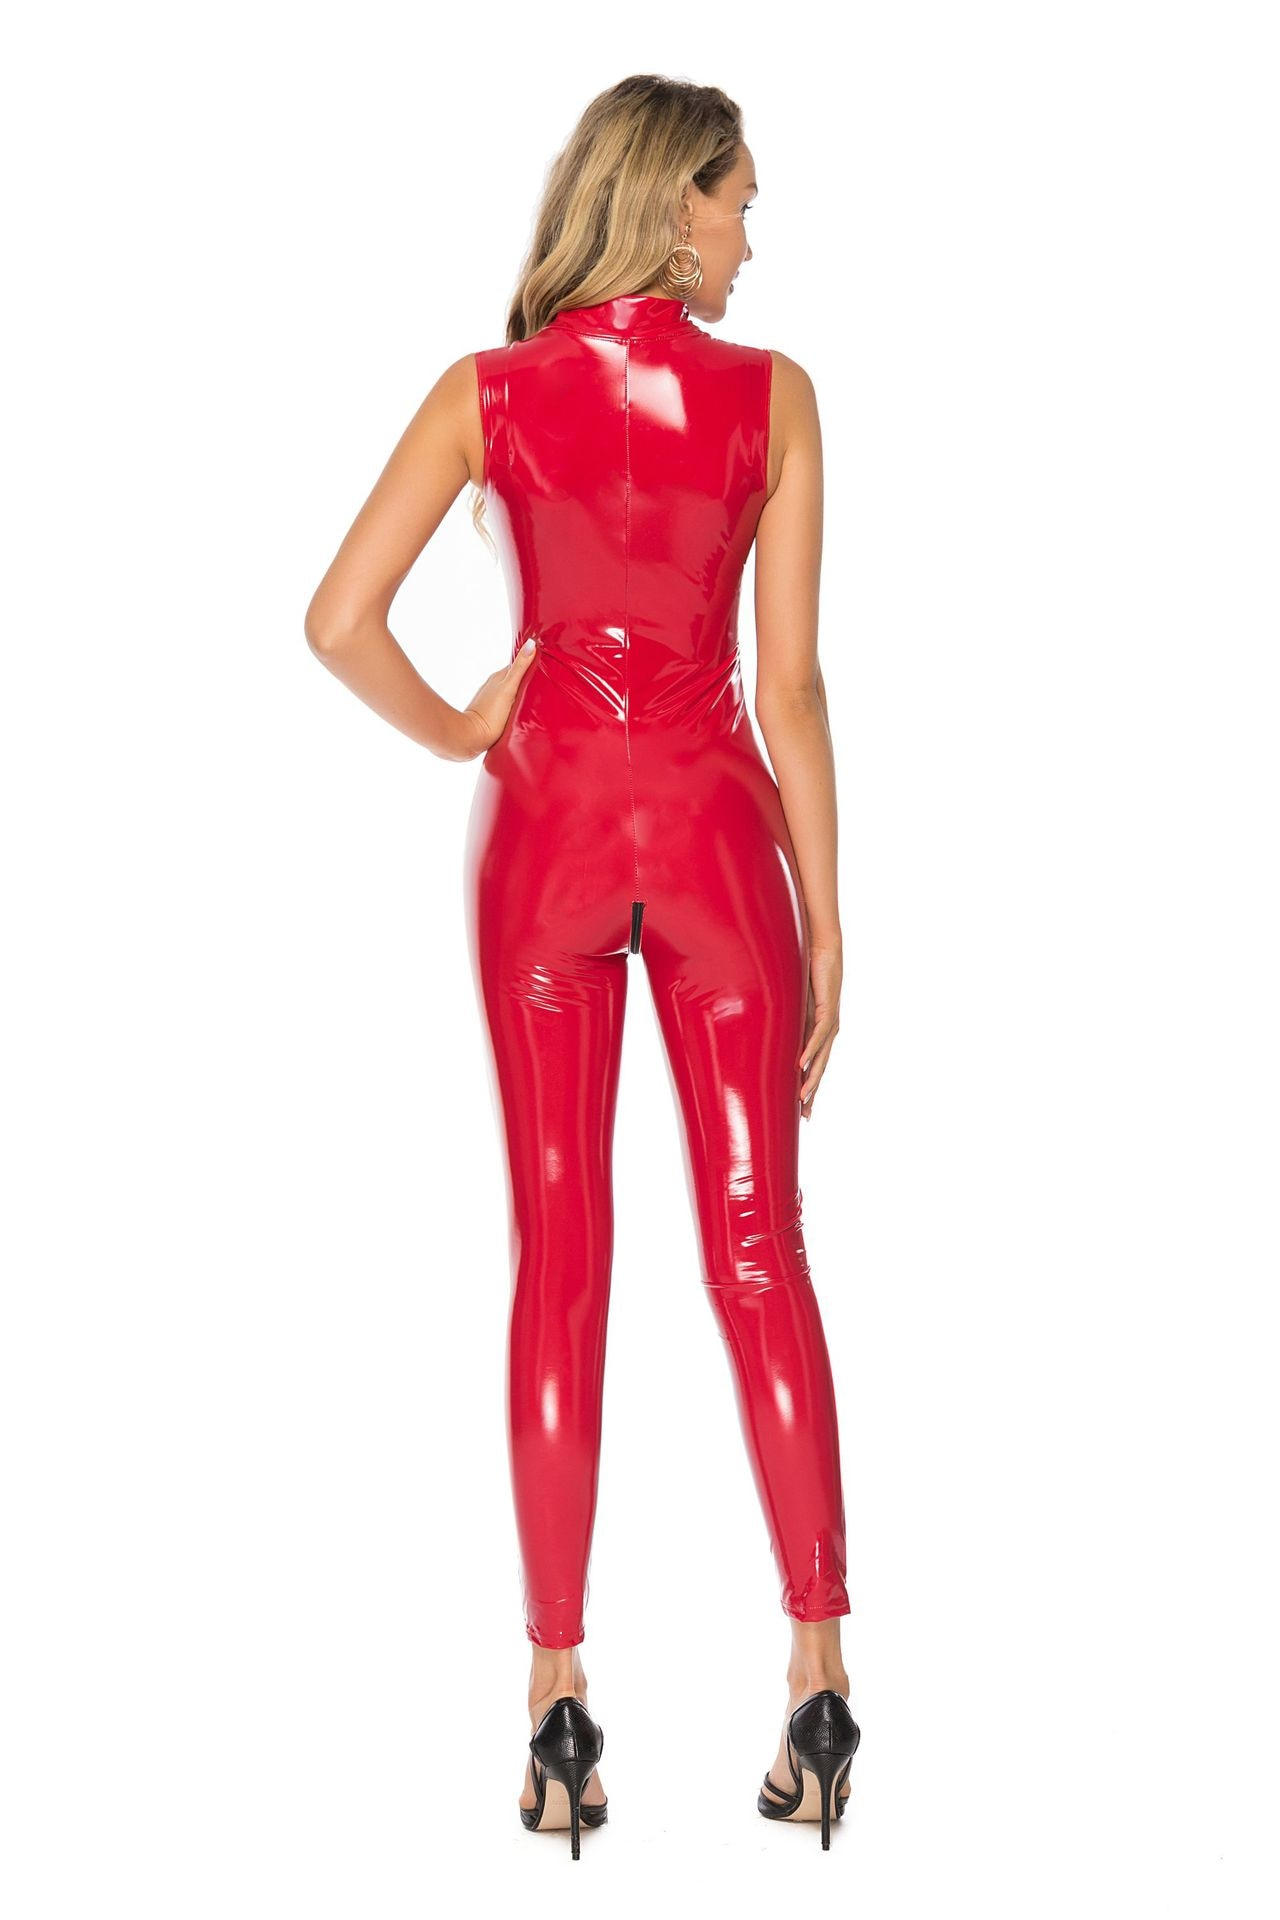 Plus Size S-5XL Women Sexy PVC Latex Catsuit Sleeveless Leather Bodysuit Zipper Crotch Open Cup Sexy Costumes Wet Look Clubwear